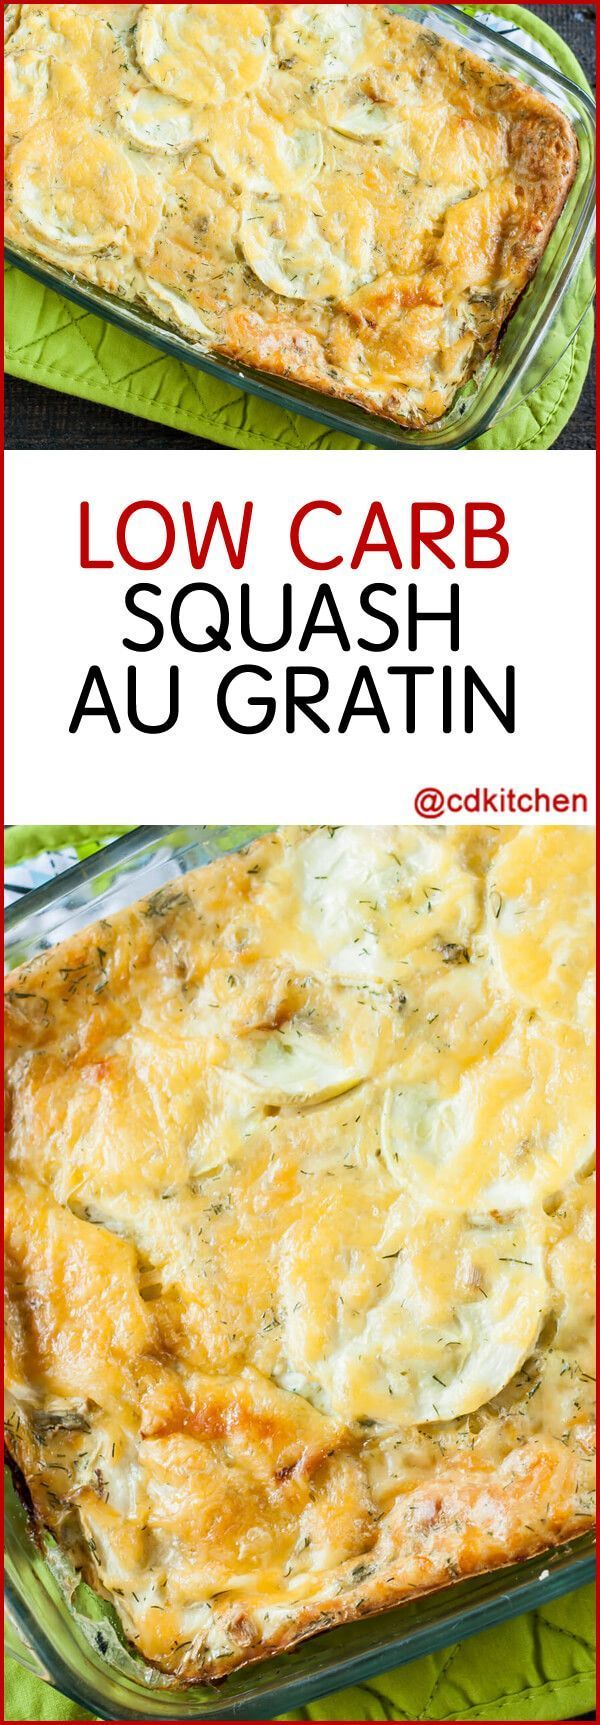 Low Carb Squash Au Gratin - This simple side dish can be made with zucchini, summer squash, or other squash. Whichever you choose, simply cook until tender and then add to the remaining ingredients.| CDKitchen.com